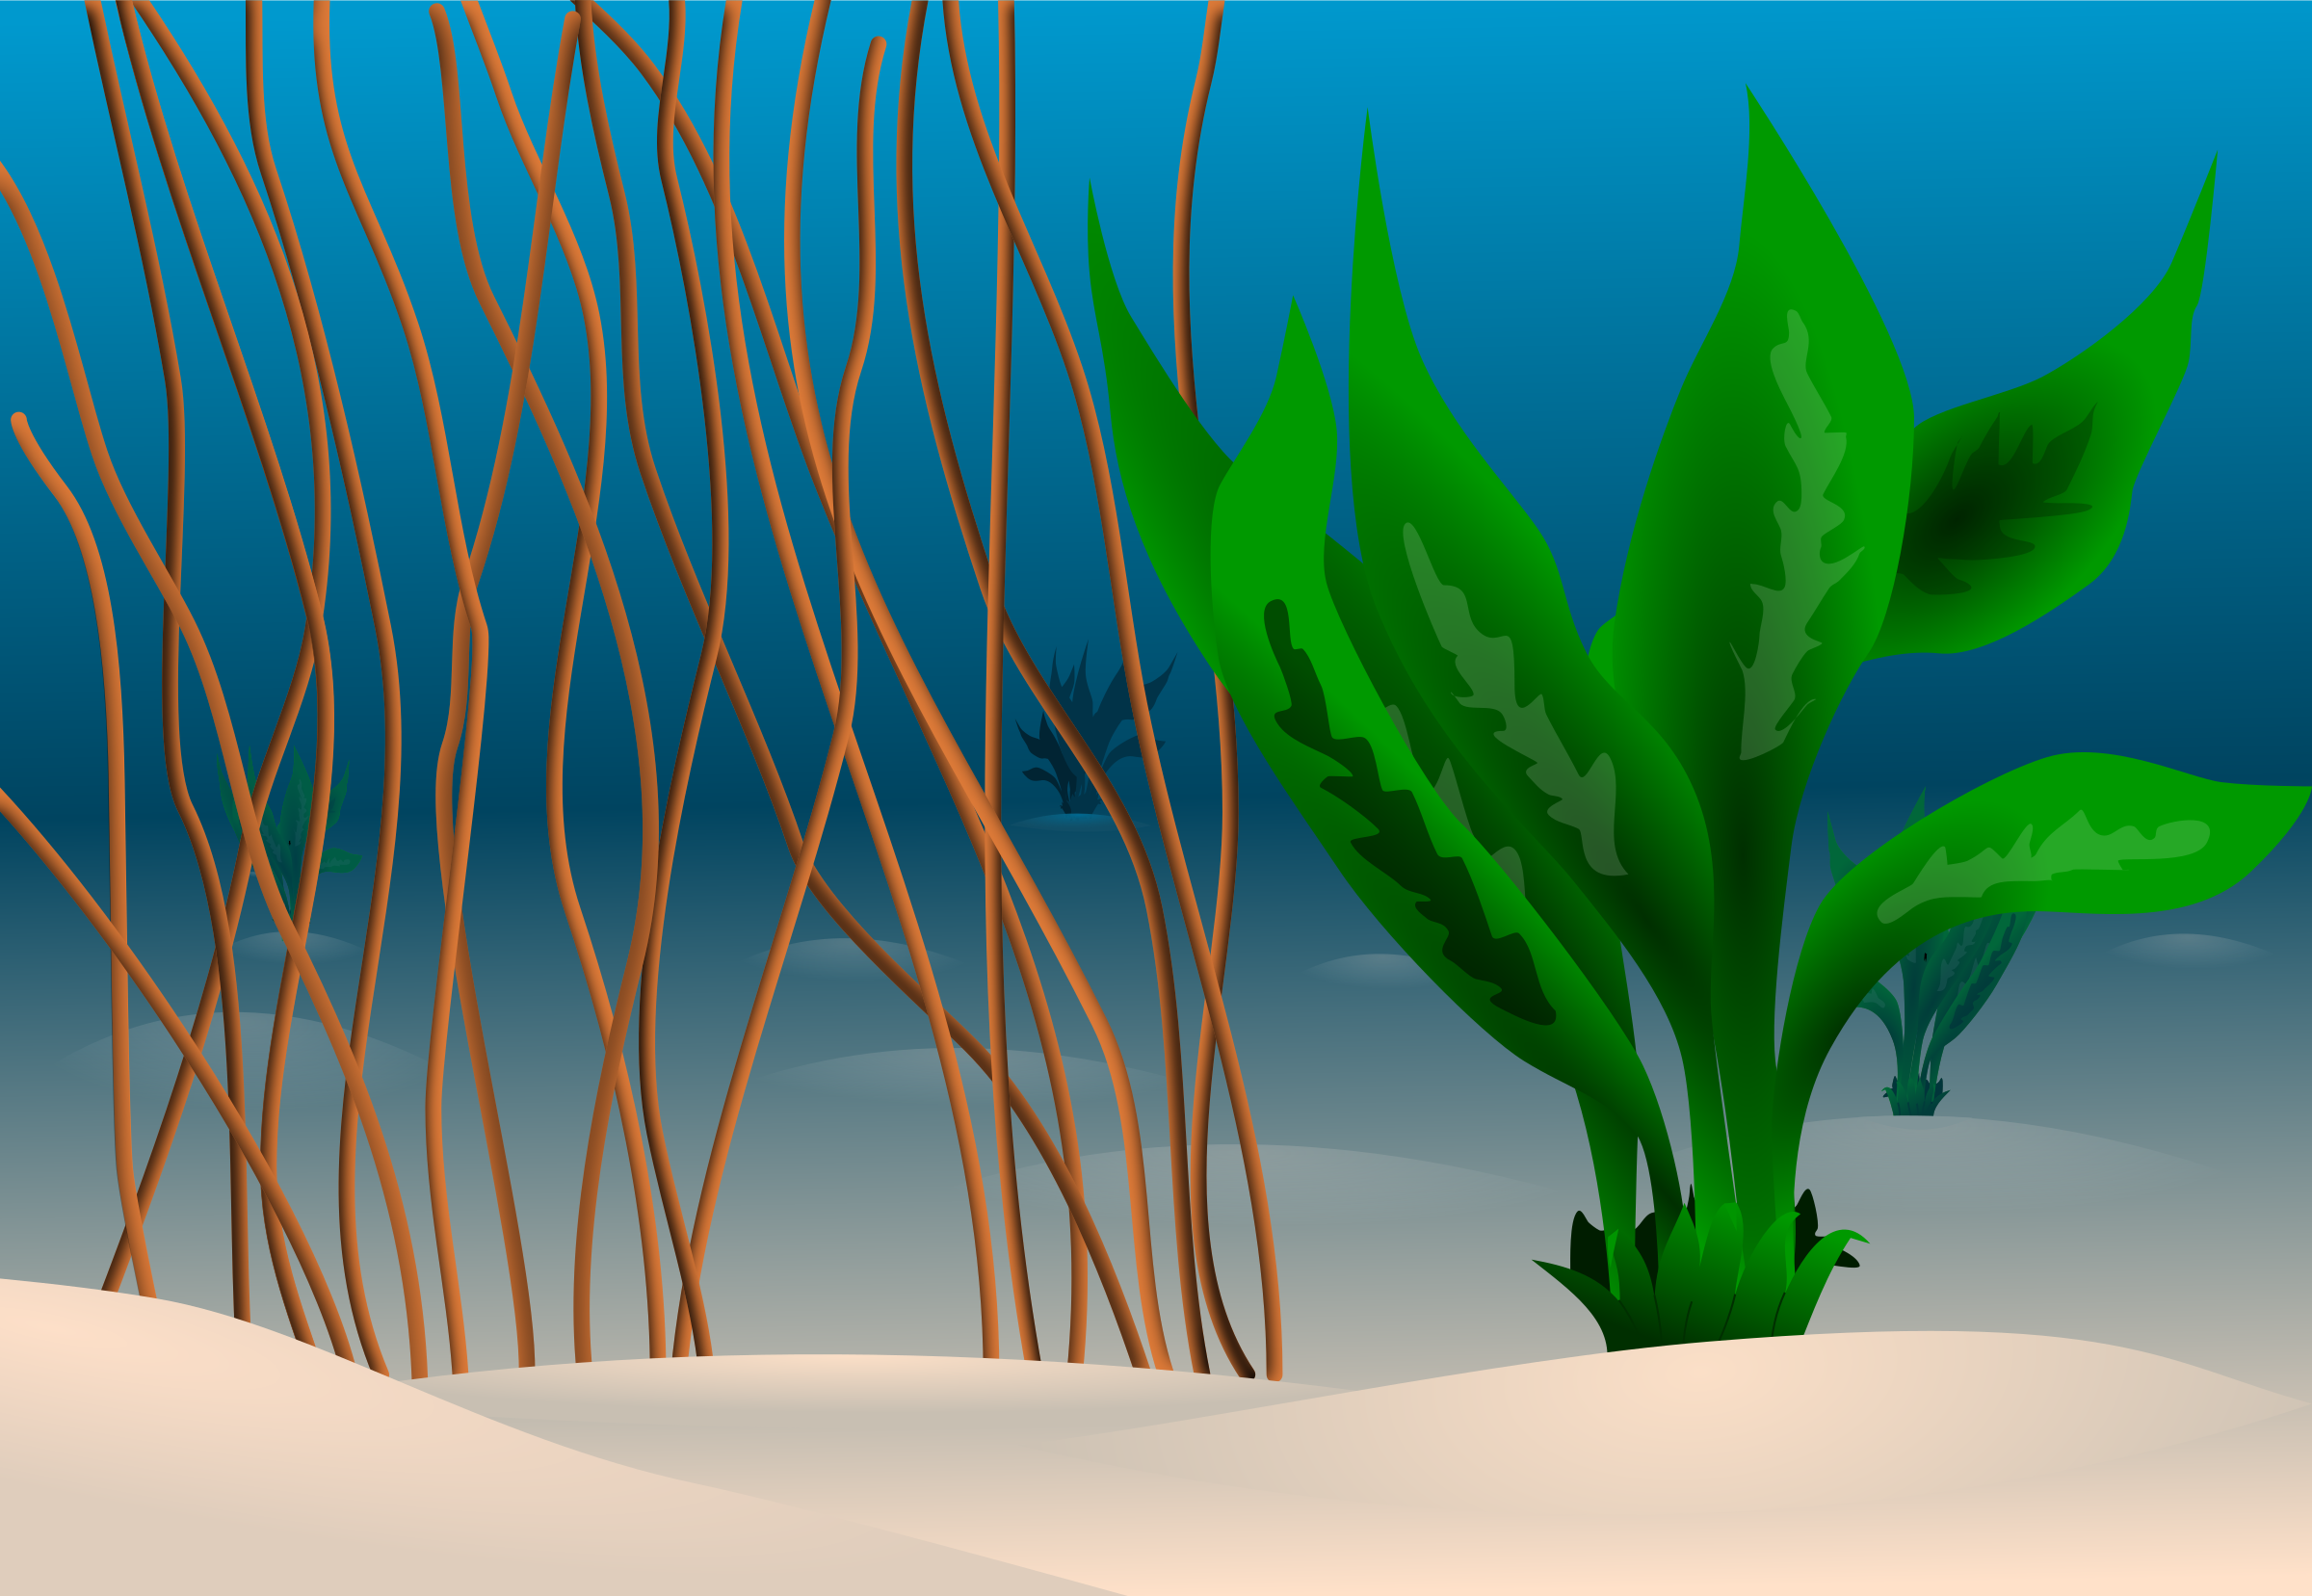 Underwater grass free clipart picture Free Underwater Cliparts, Download Free Clip Art, Free Clip ... picture